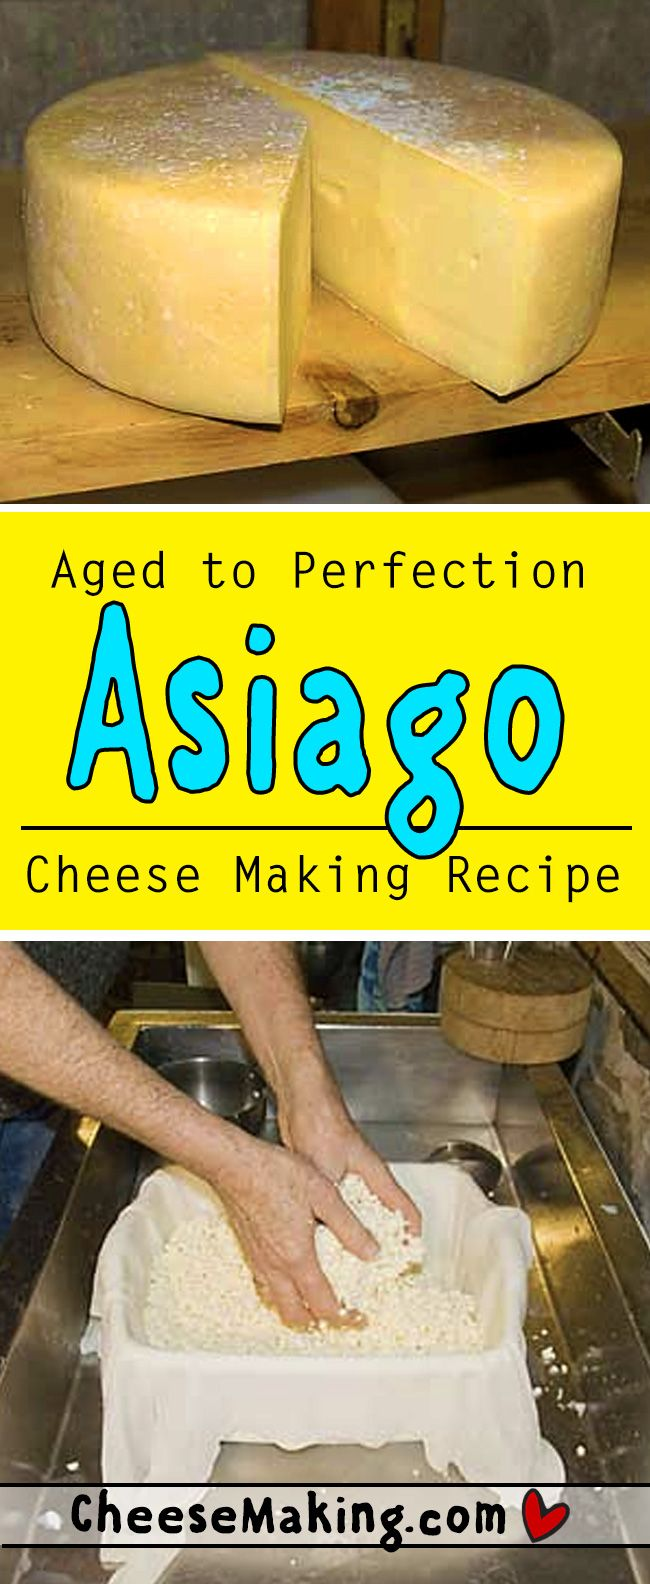 It's easy to make Asiago cheese right at home with this step by step cheese making recipe | Cheesemaking.com